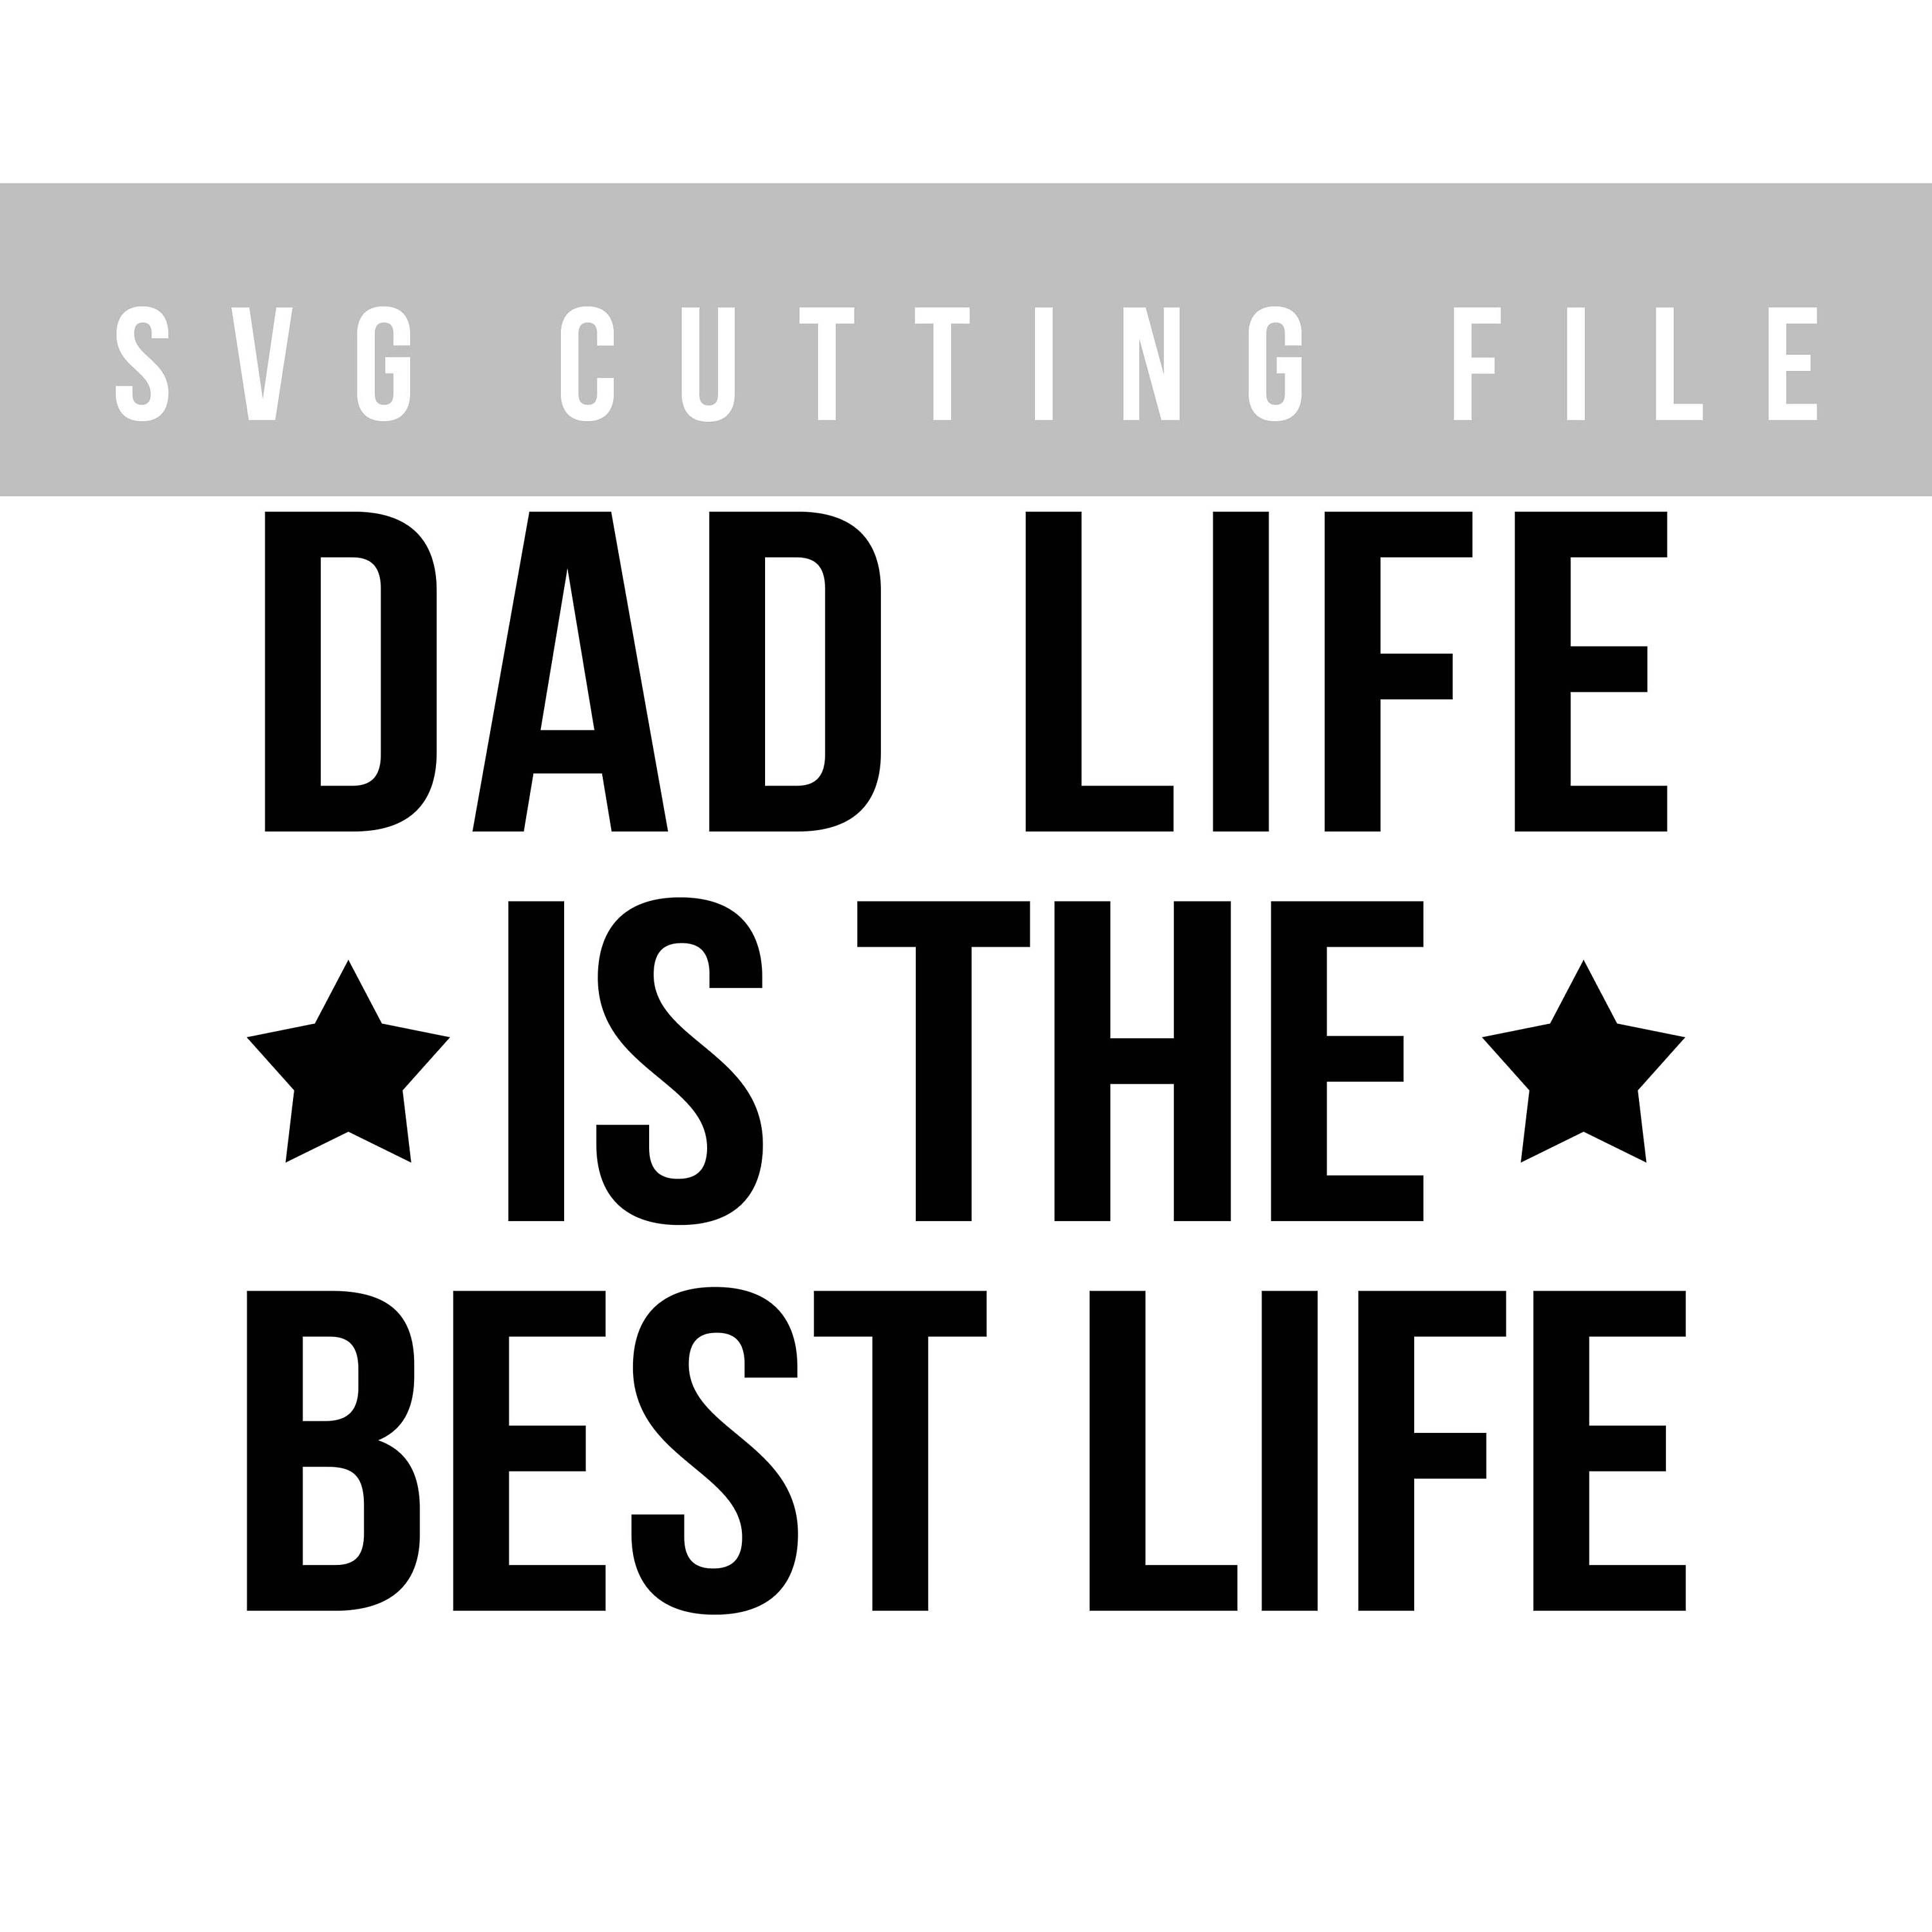 7da2da6d4 Dad life is the best life SVG cutting file Father svg Cricut cut file  Sayings svg file Iron on design Father's day svg T-shirt design Daddy by ...